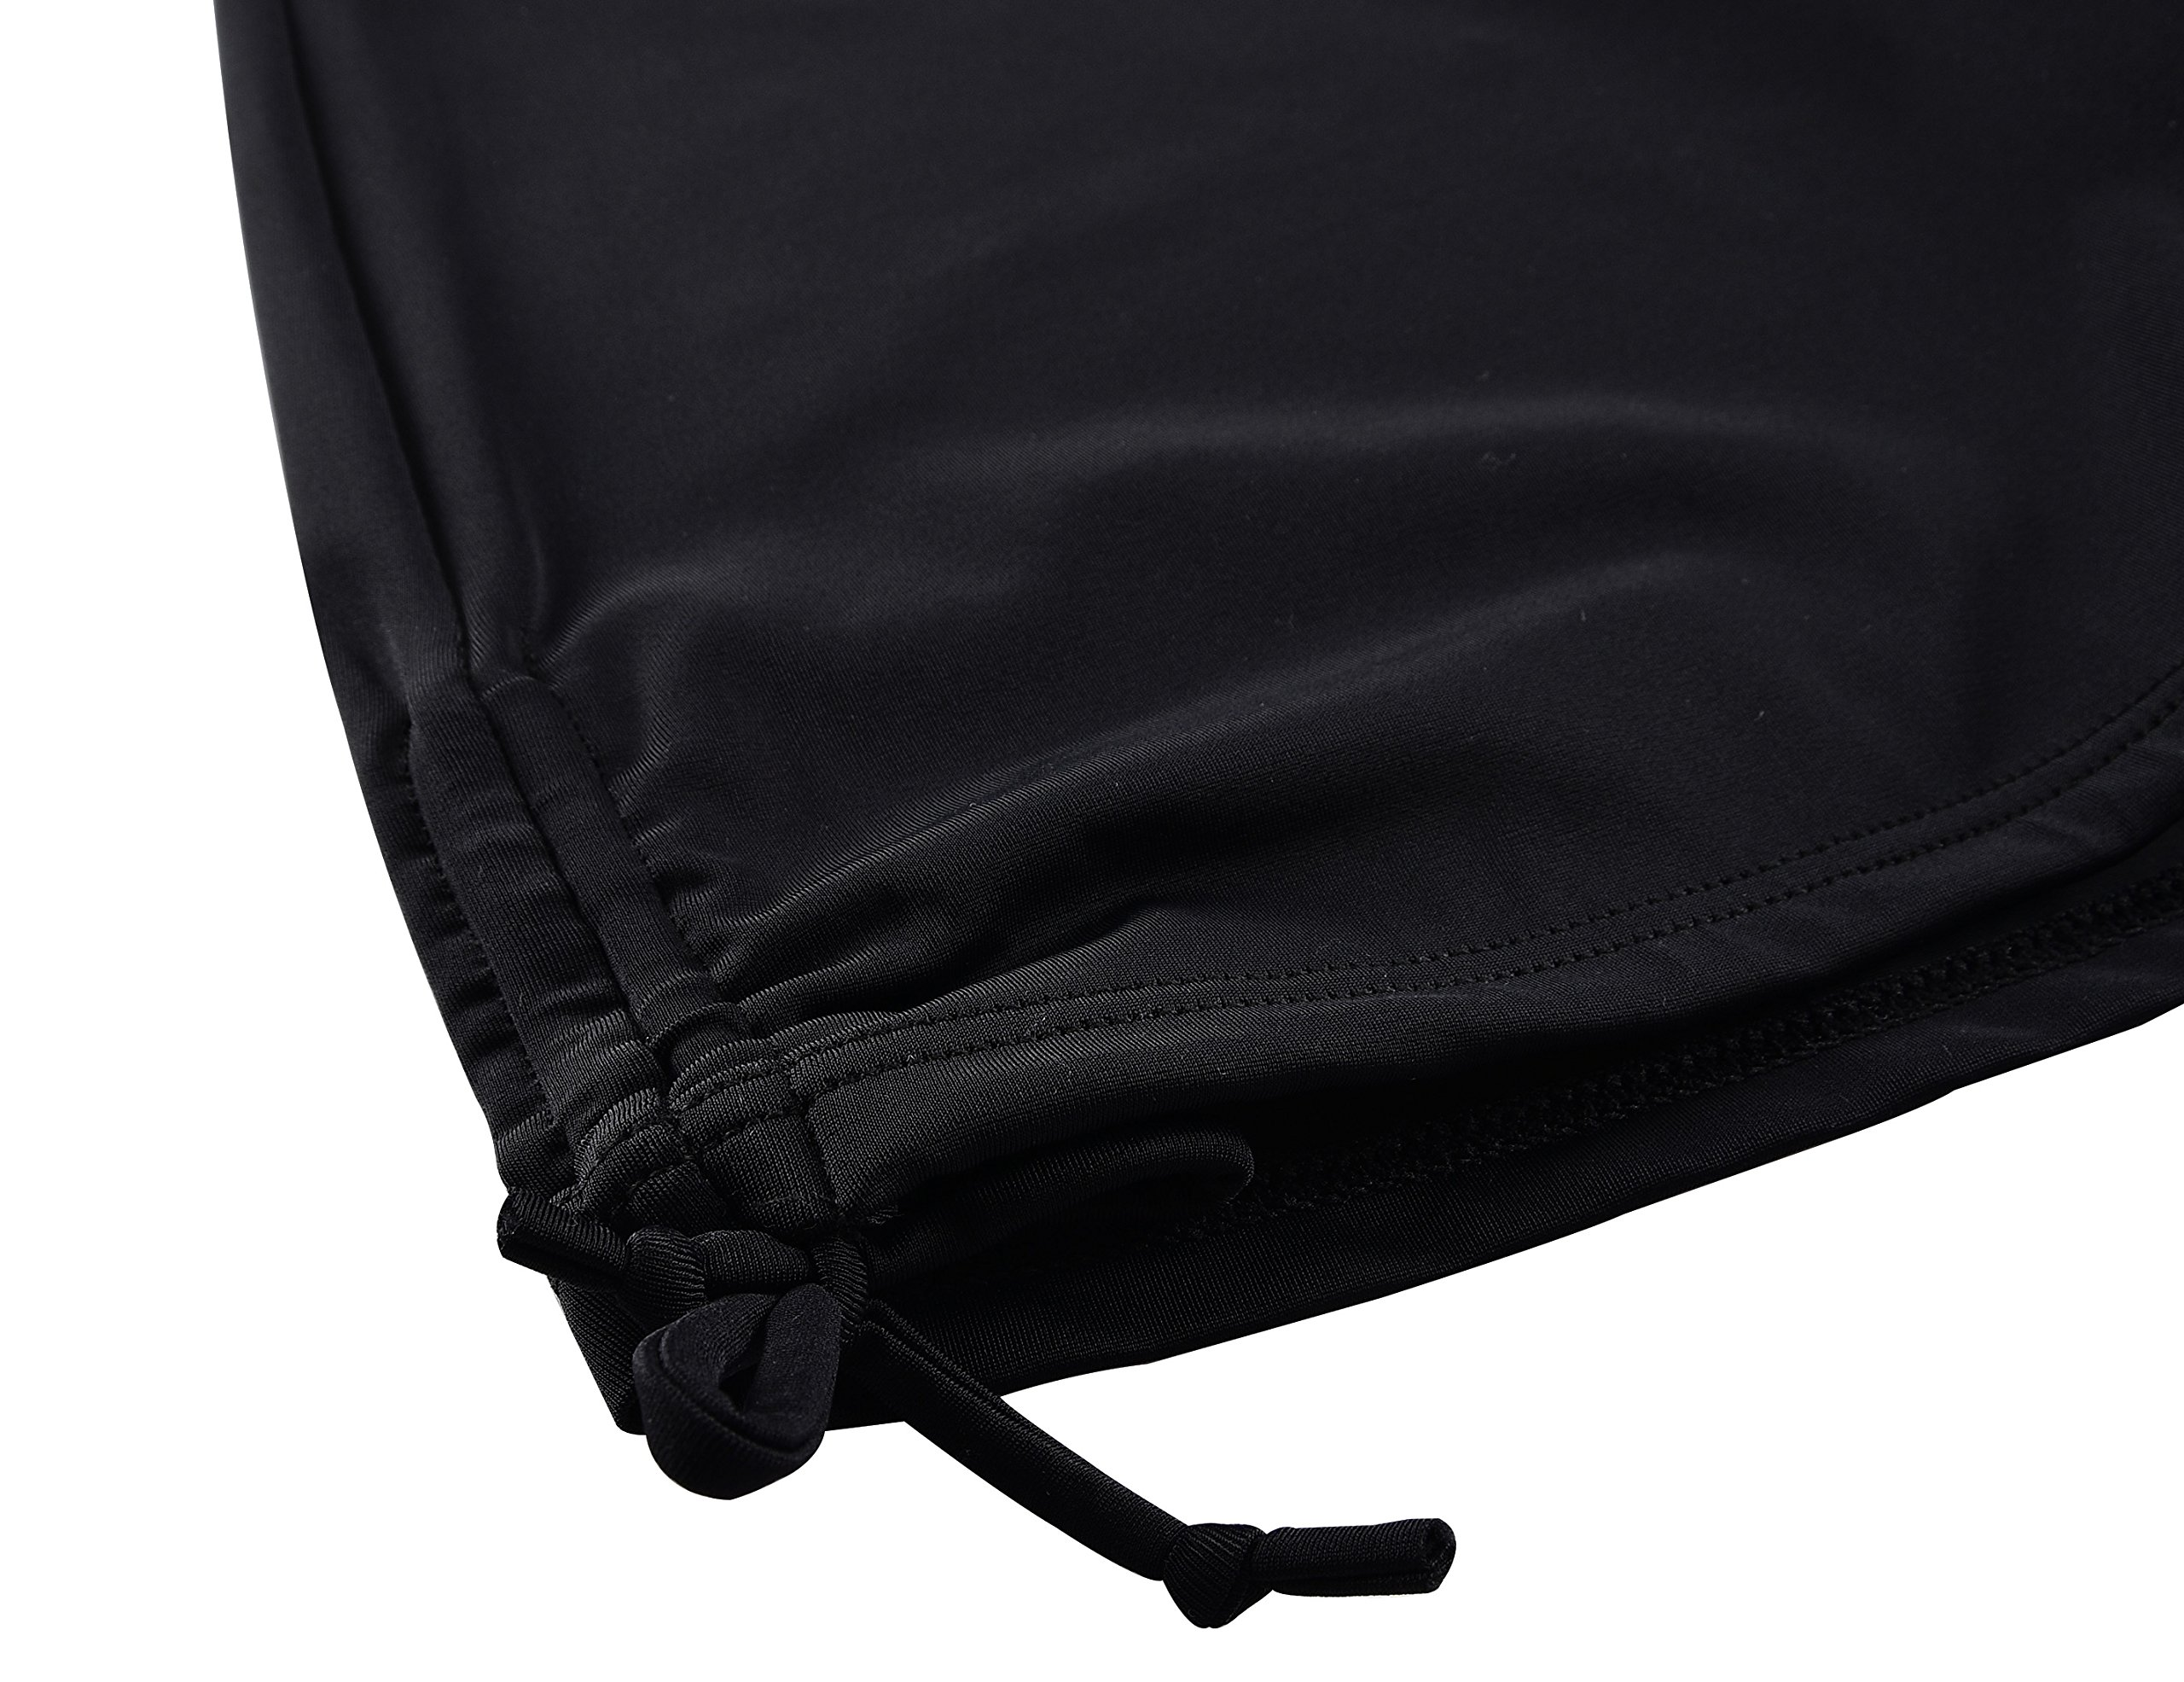 Septangle Womens Black Swim Sports Board Shorts Bottom with Side Ties,US 14 by Septangle (Image #4)